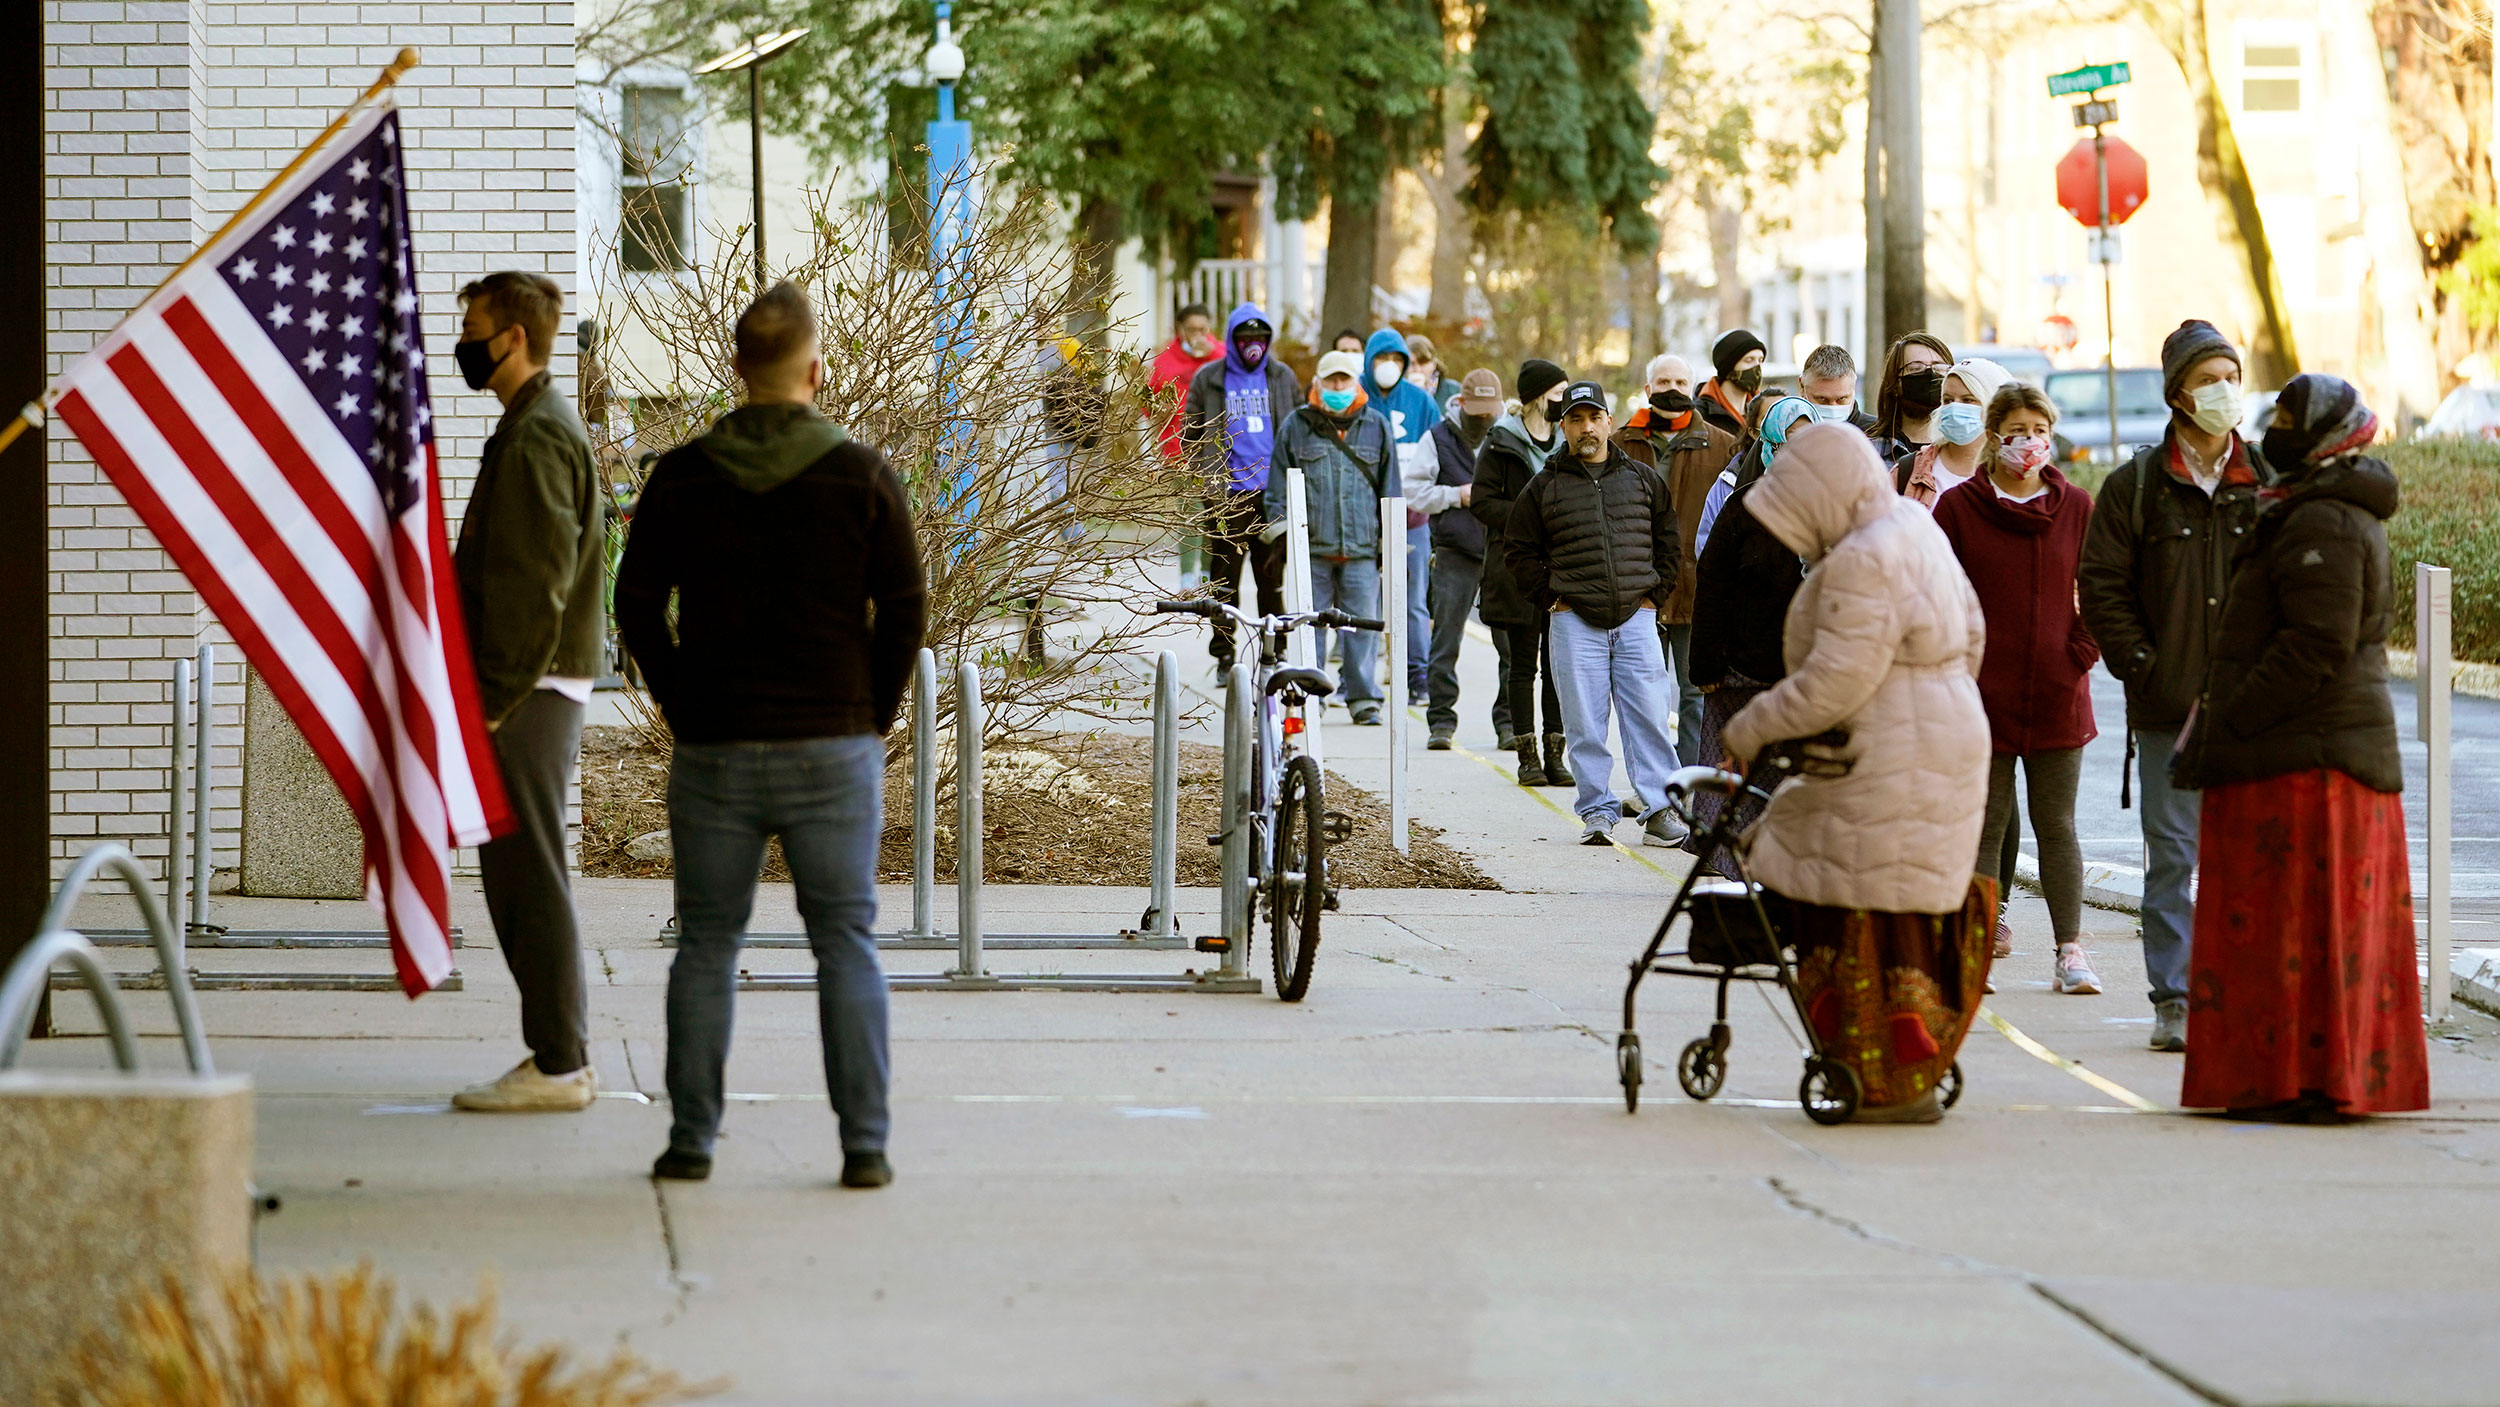 Voters wait to cast their votes on November 3 at the Minneapolis College of Art and Design in Minnesota.